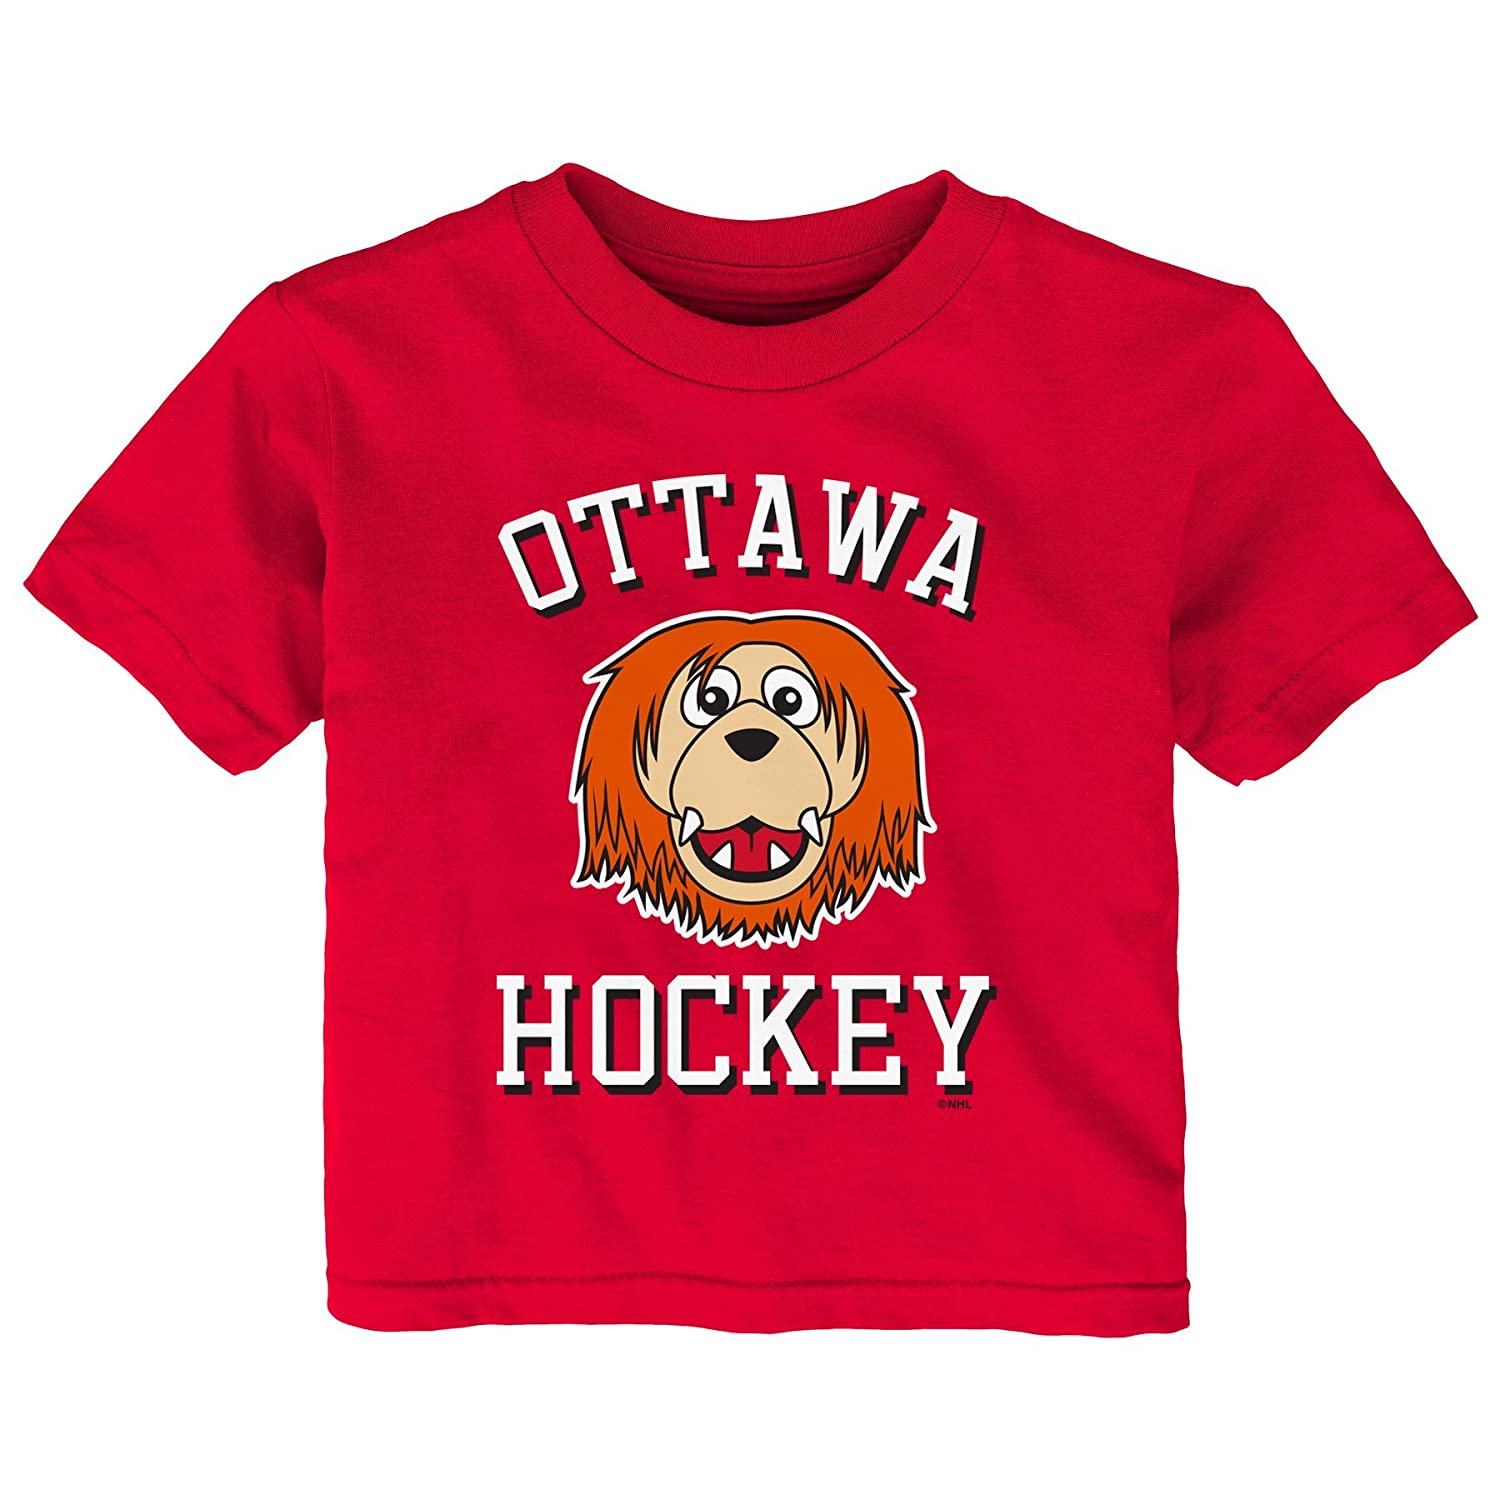 肌触りがいい (Ottawa Senators, 18 Months, (Ottawa Red) - NHL 18 NHL unisex-child